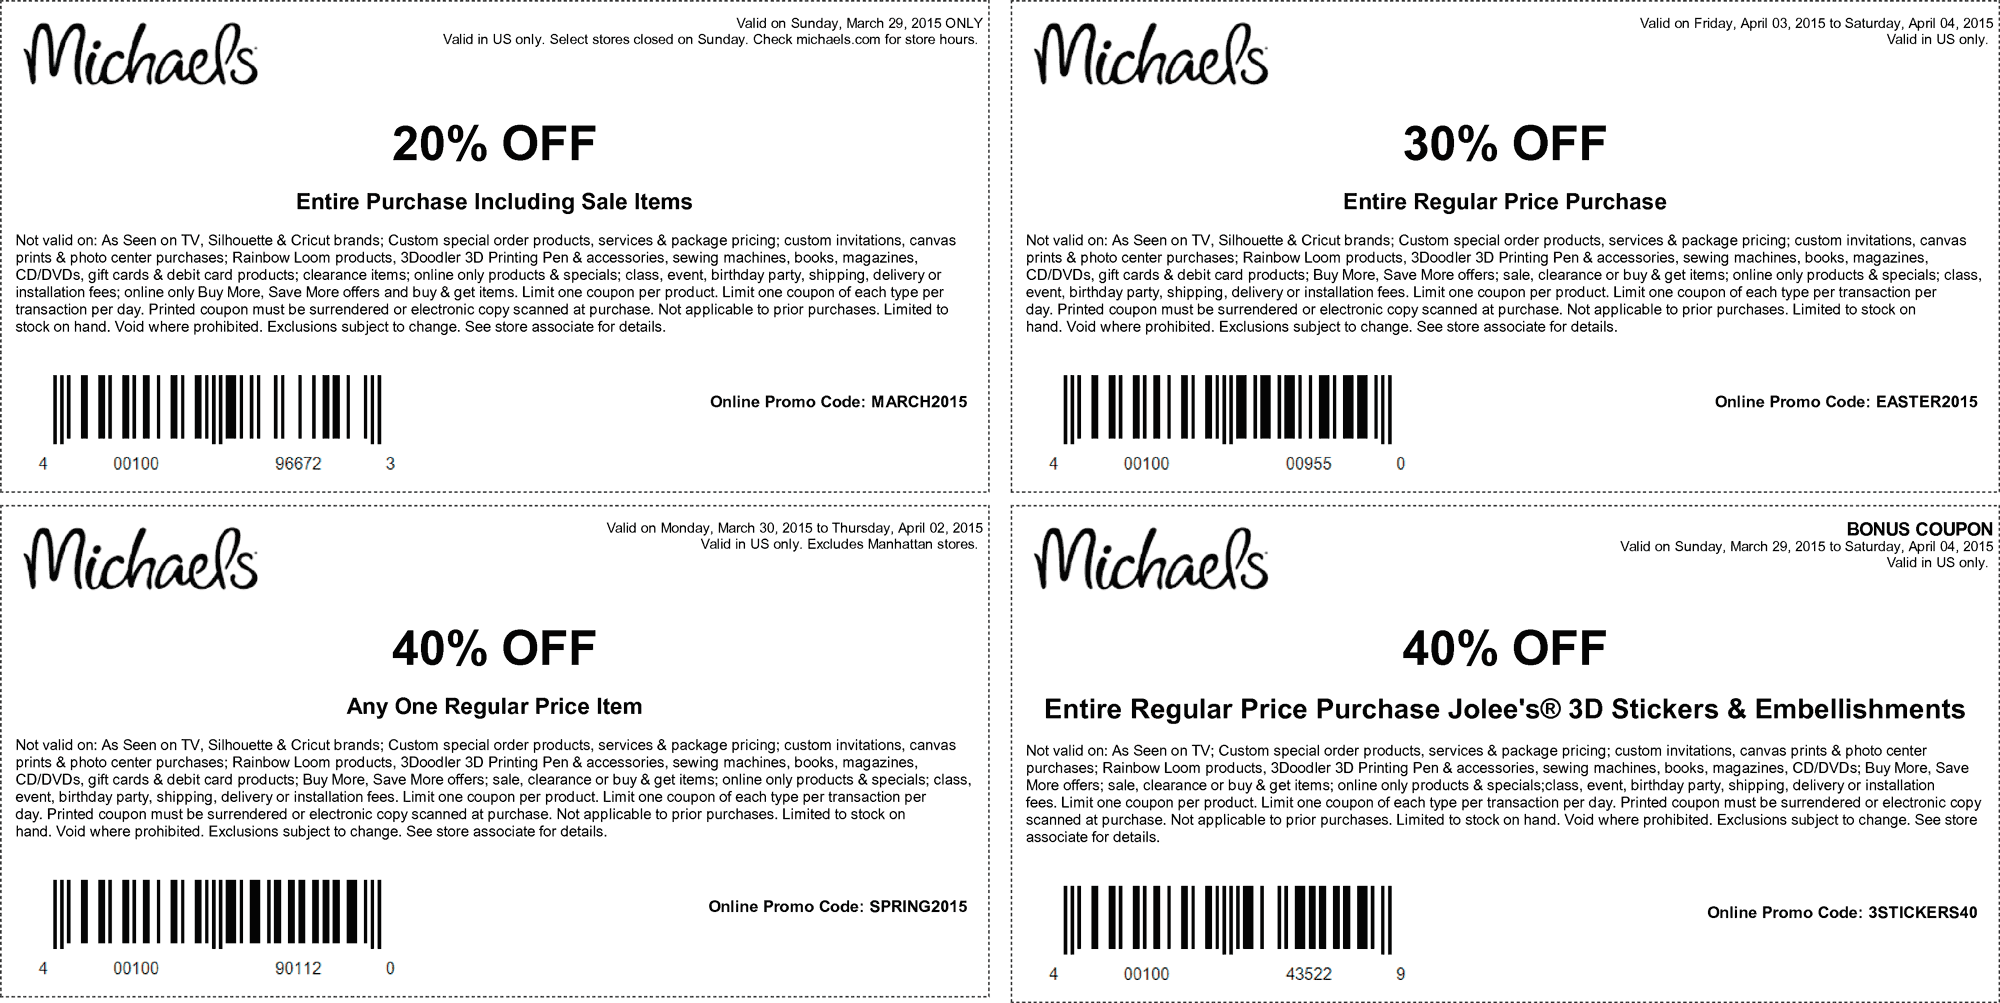 Ornaments and more online coupons